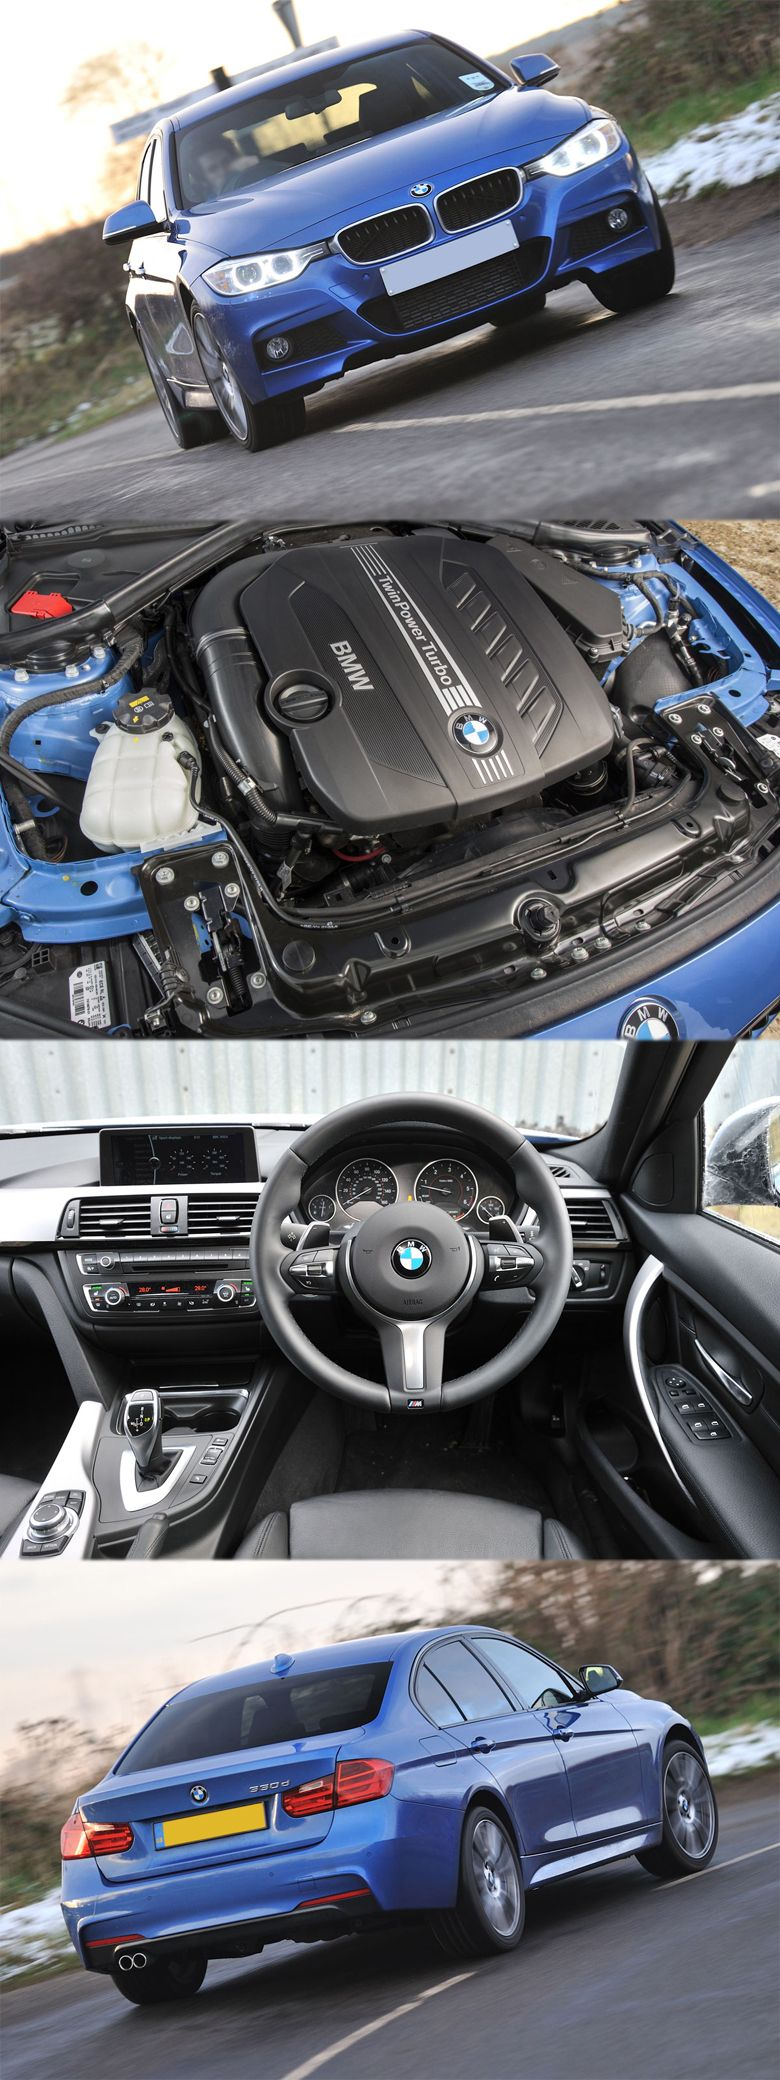 BMW 330d Engine Performance is Key to Success | BMW, Engine and